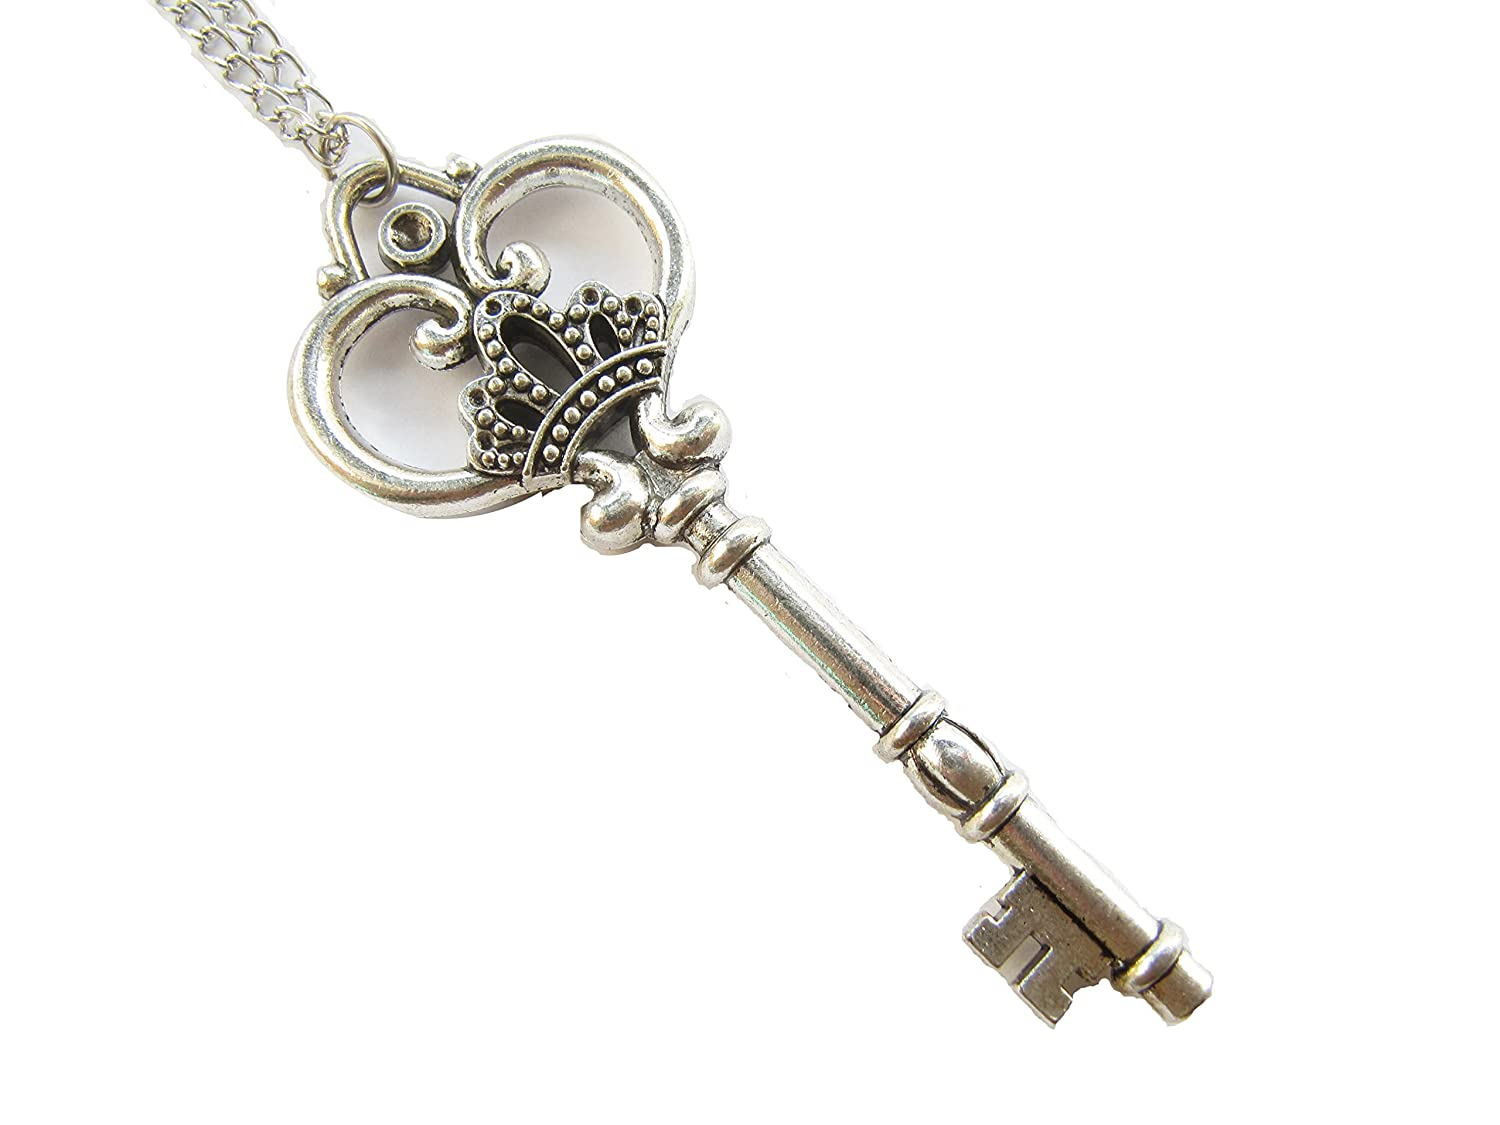 Amazon.com: Large Skeleton Key Necklace, Antique Silver Finish Key ...